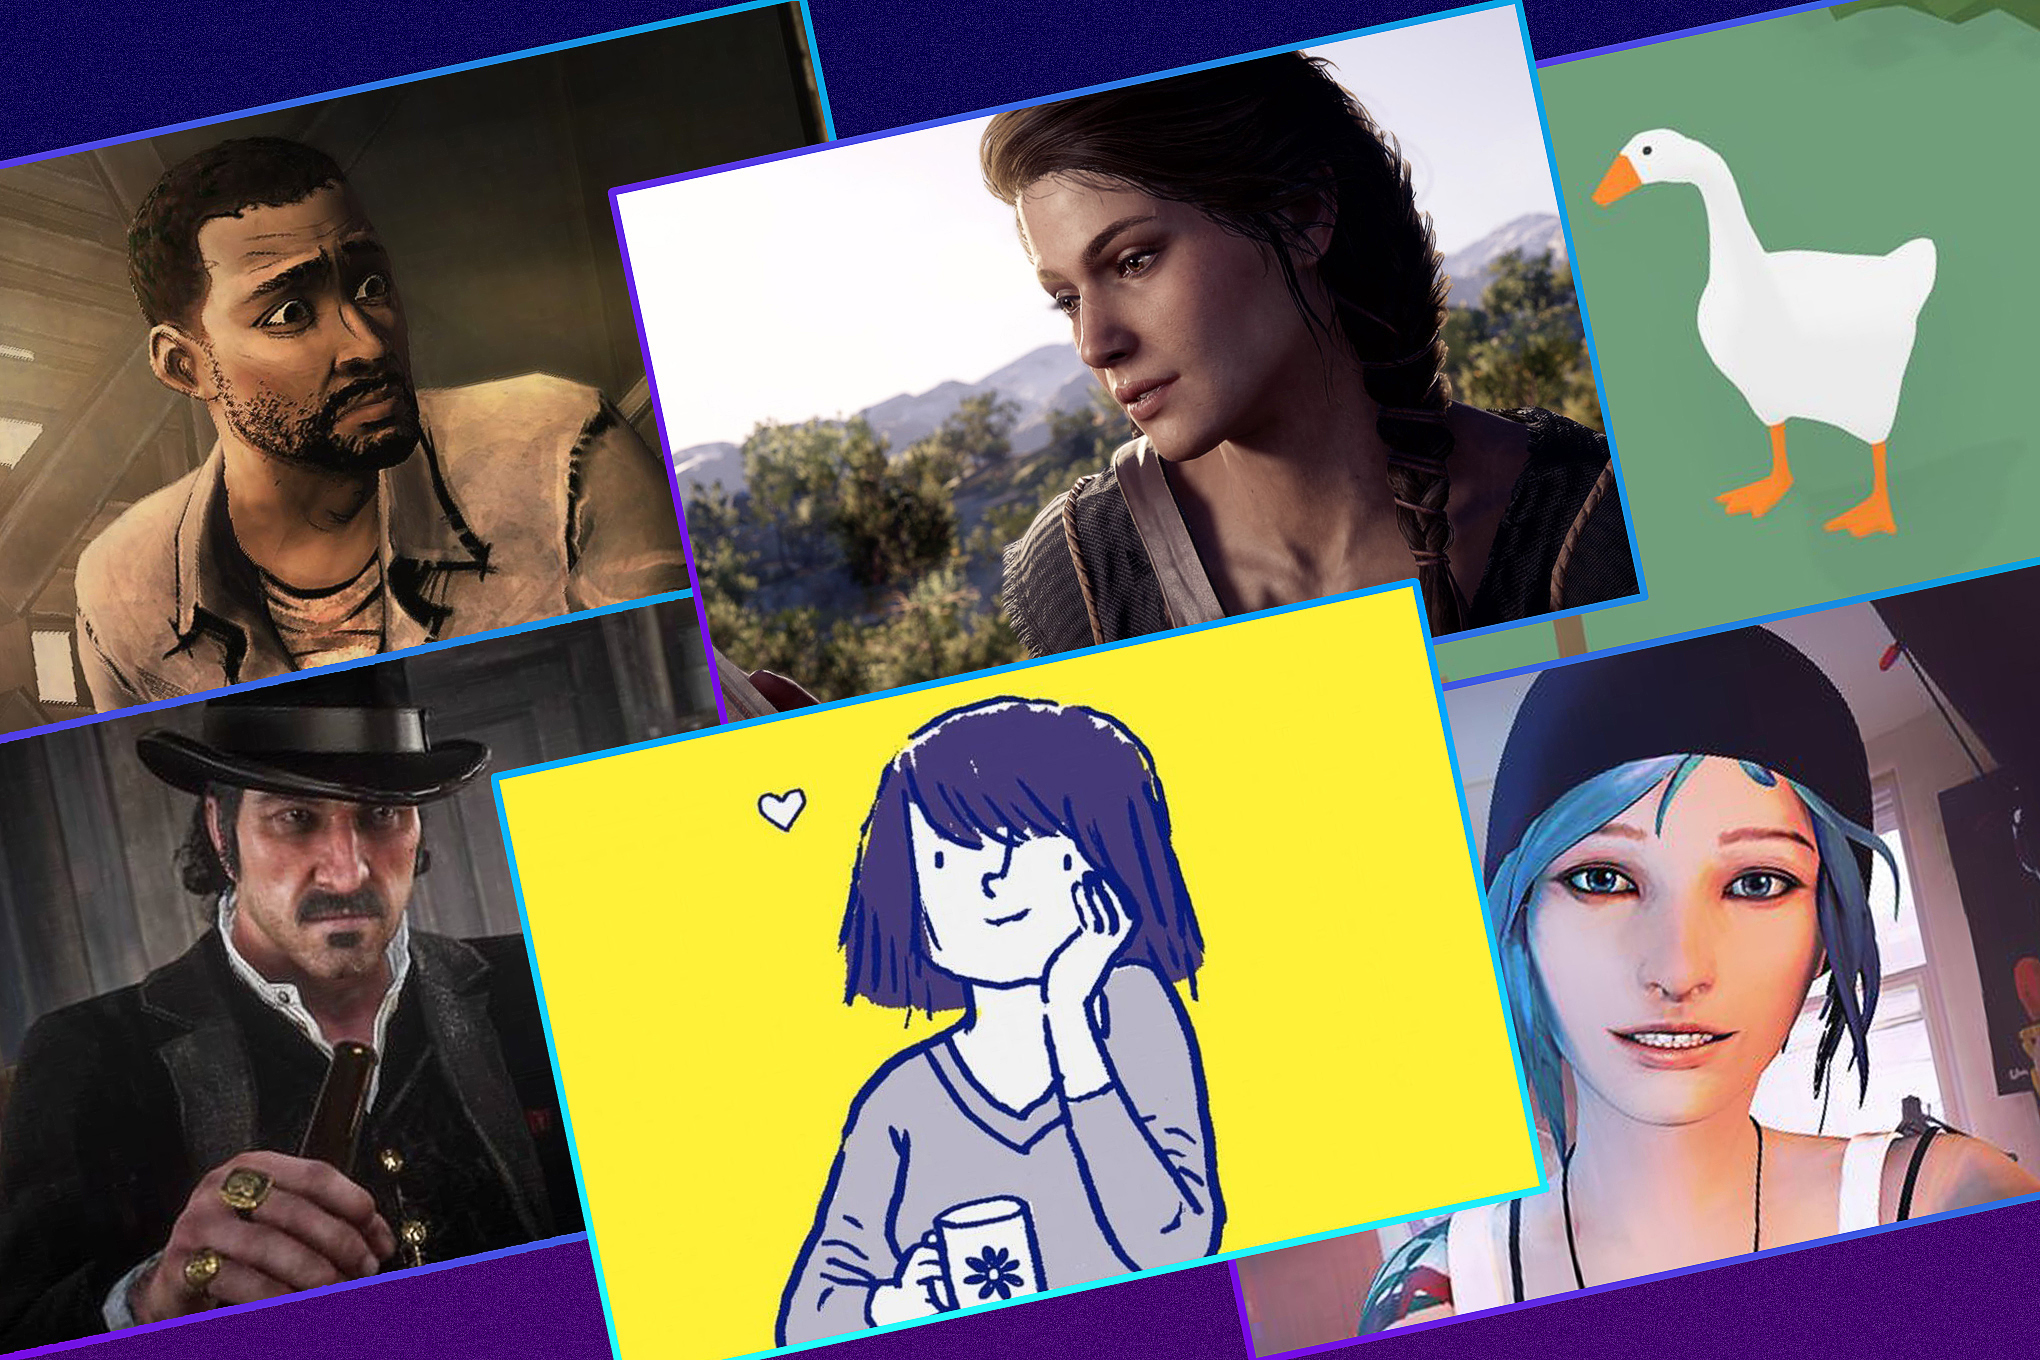 Graphic featuring six different video game characters from the last decade (2010-2020)